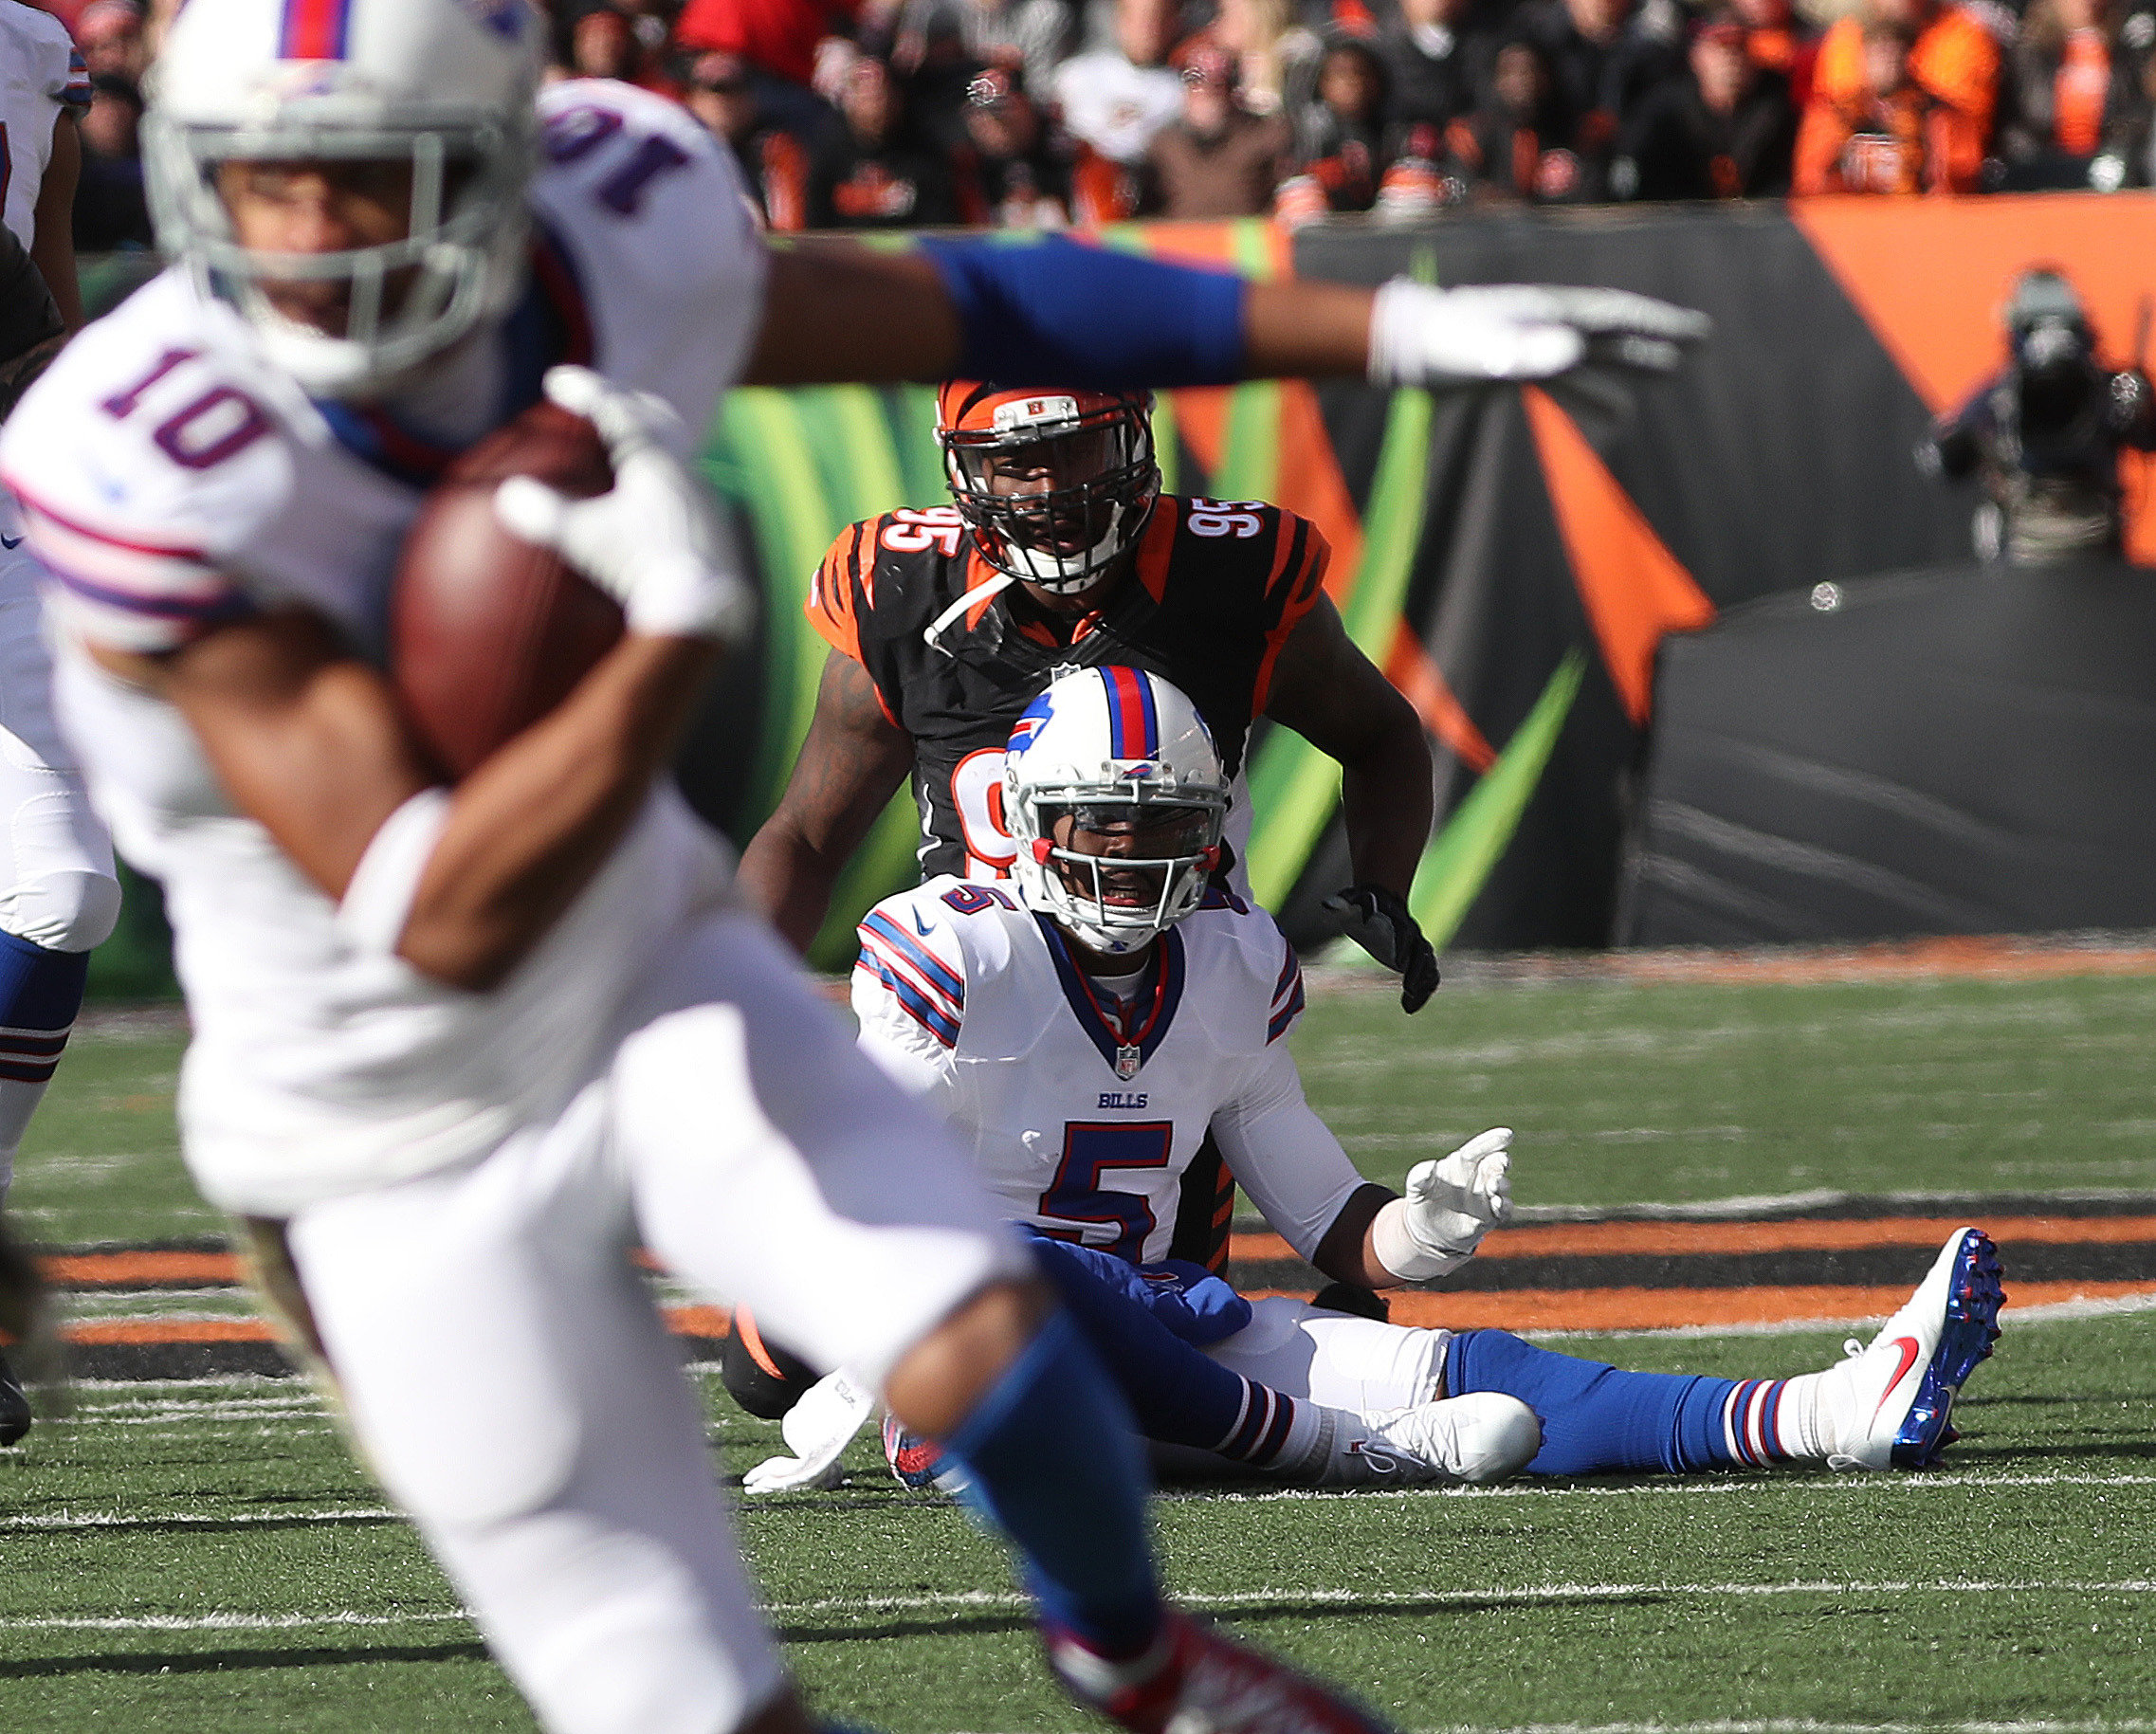 Buffalo Bills quarterback Tyrod Taylor (5) watches Buffalo Bills wide receiver Robert Woods (10) gain a first down in the first quarter. Woods would leave the game with an injury in the second quarter. (James P. McCoy/Buffalo News)